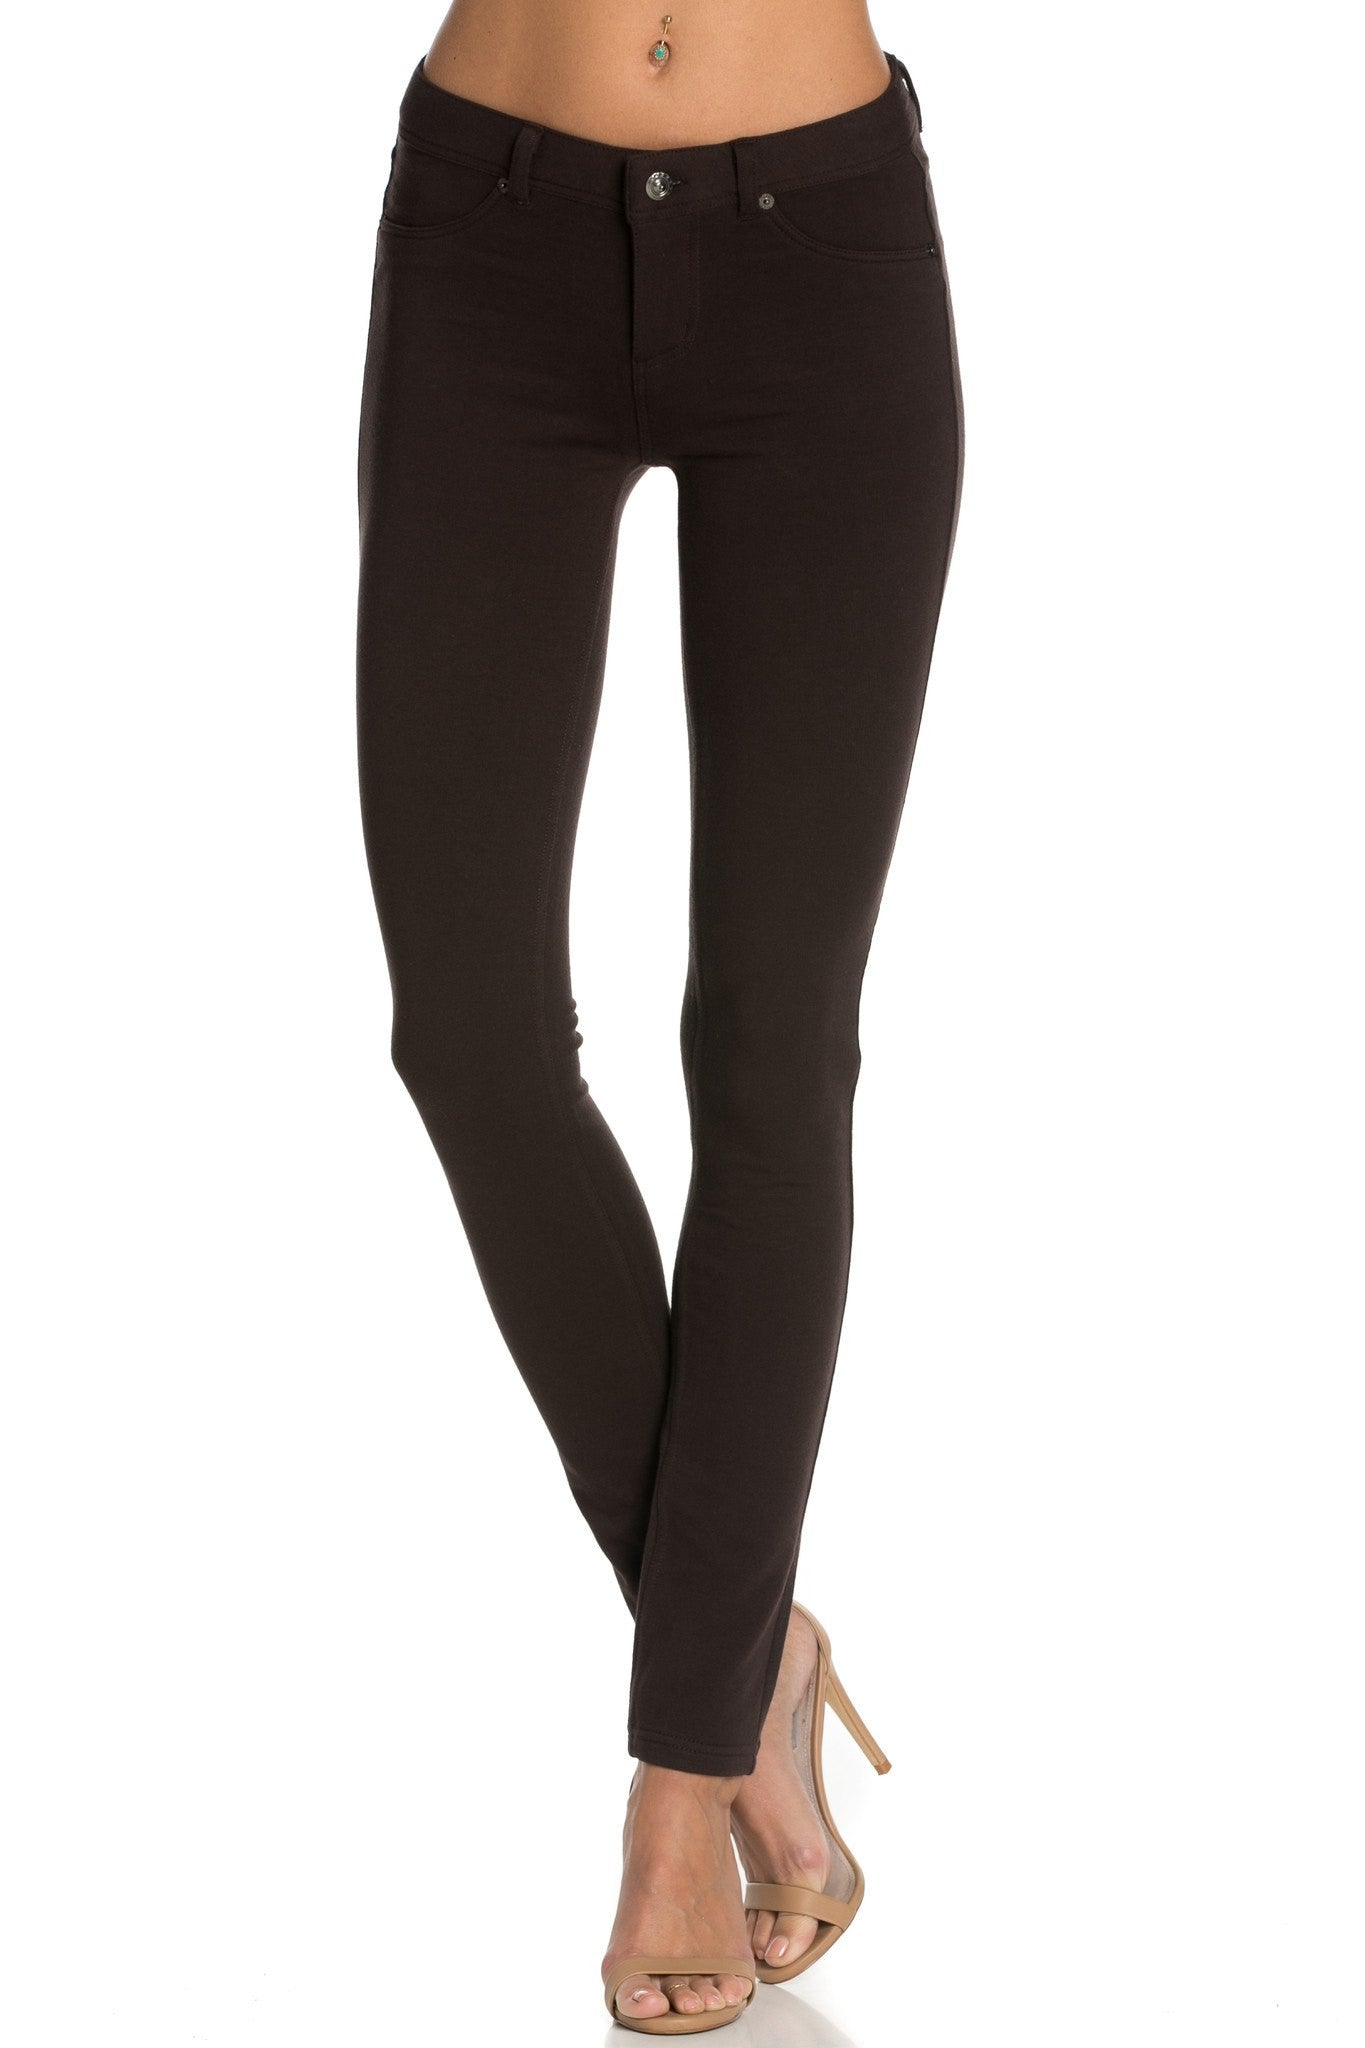 Stretch Skinny Knit Jegging Pants (Brown) - Poplooks